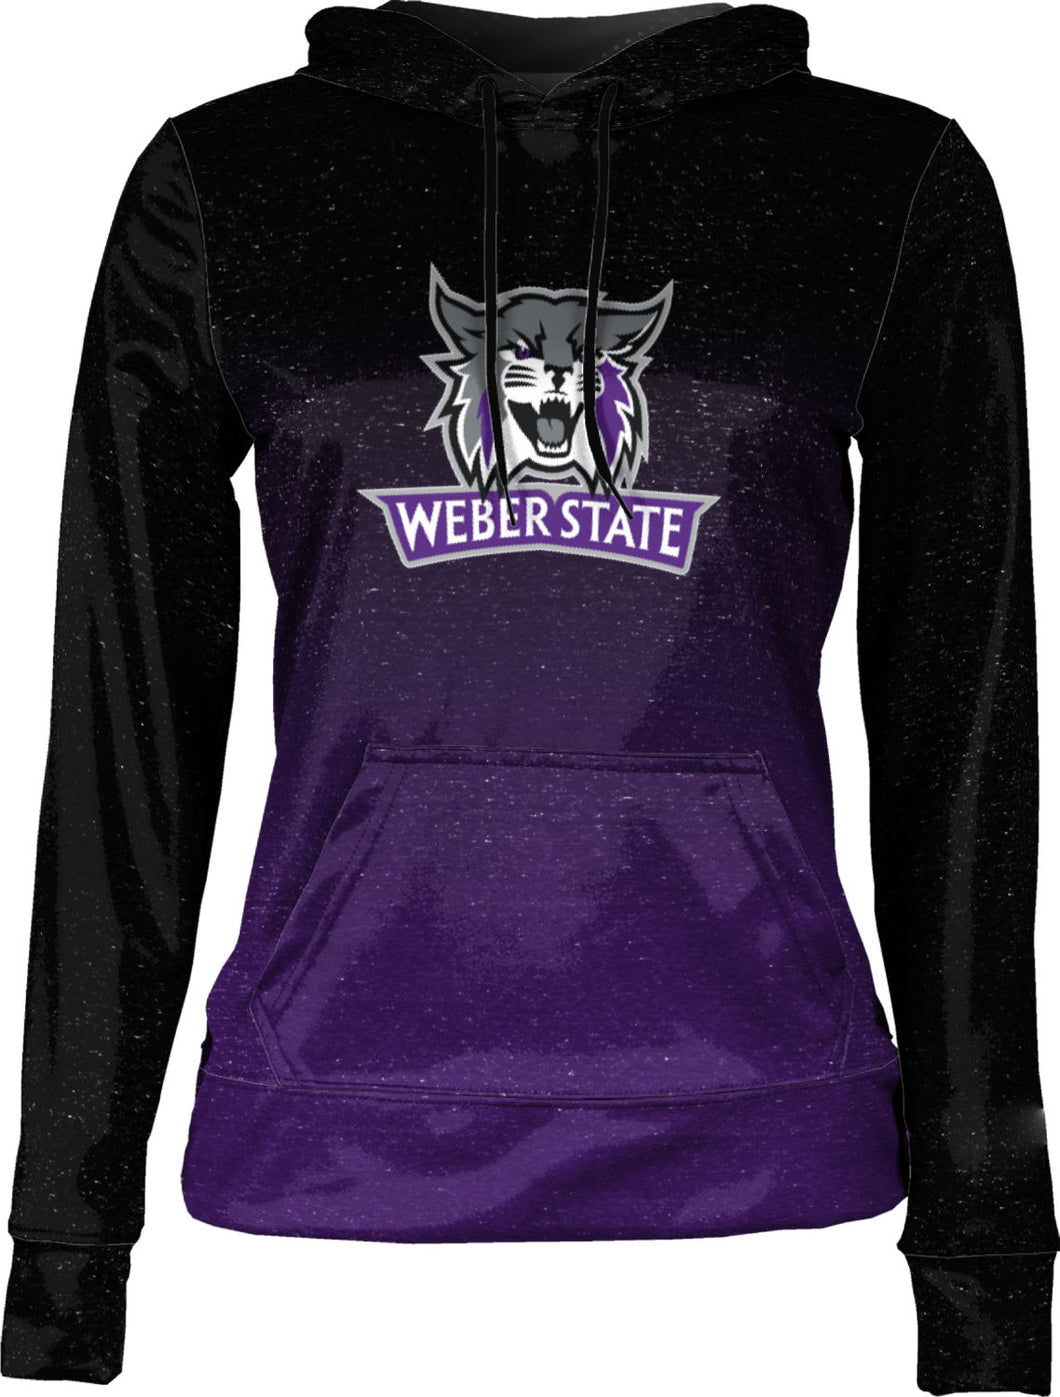 Weber State University: Girls' Pullover Hoodie - Ombre